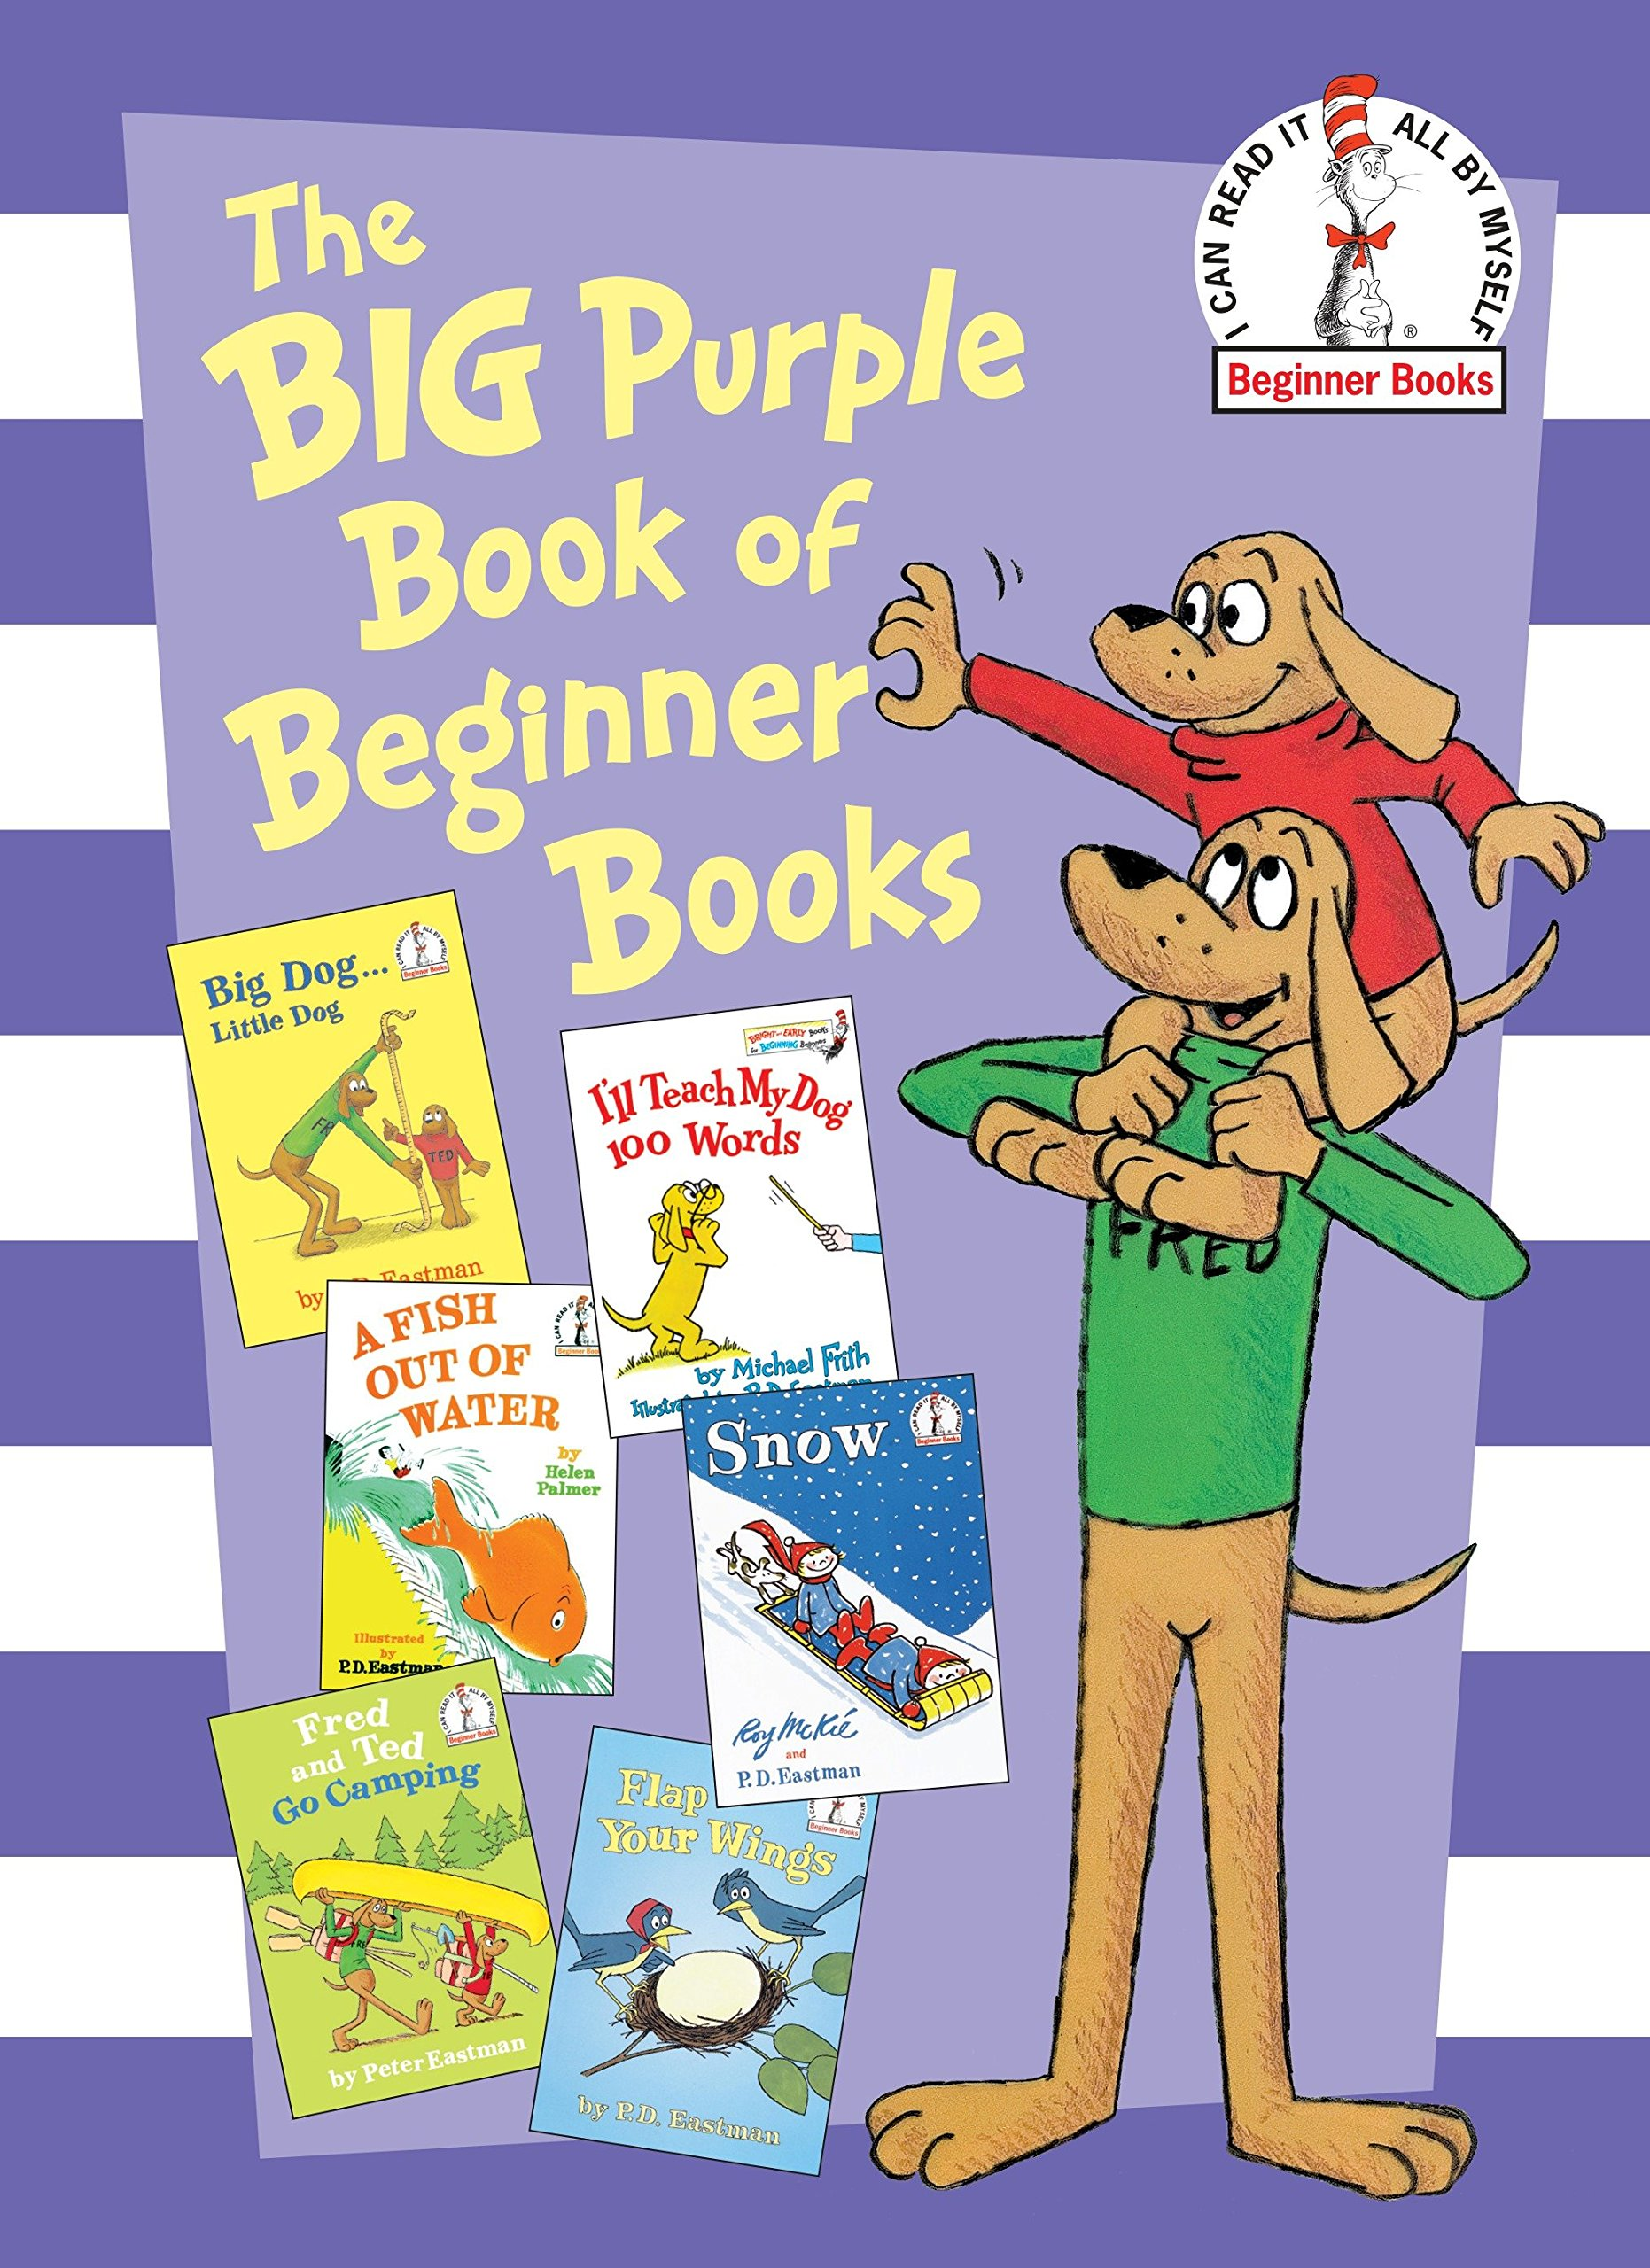 Big Purple Book of Beginner Books (Big Book of Beginner Books)